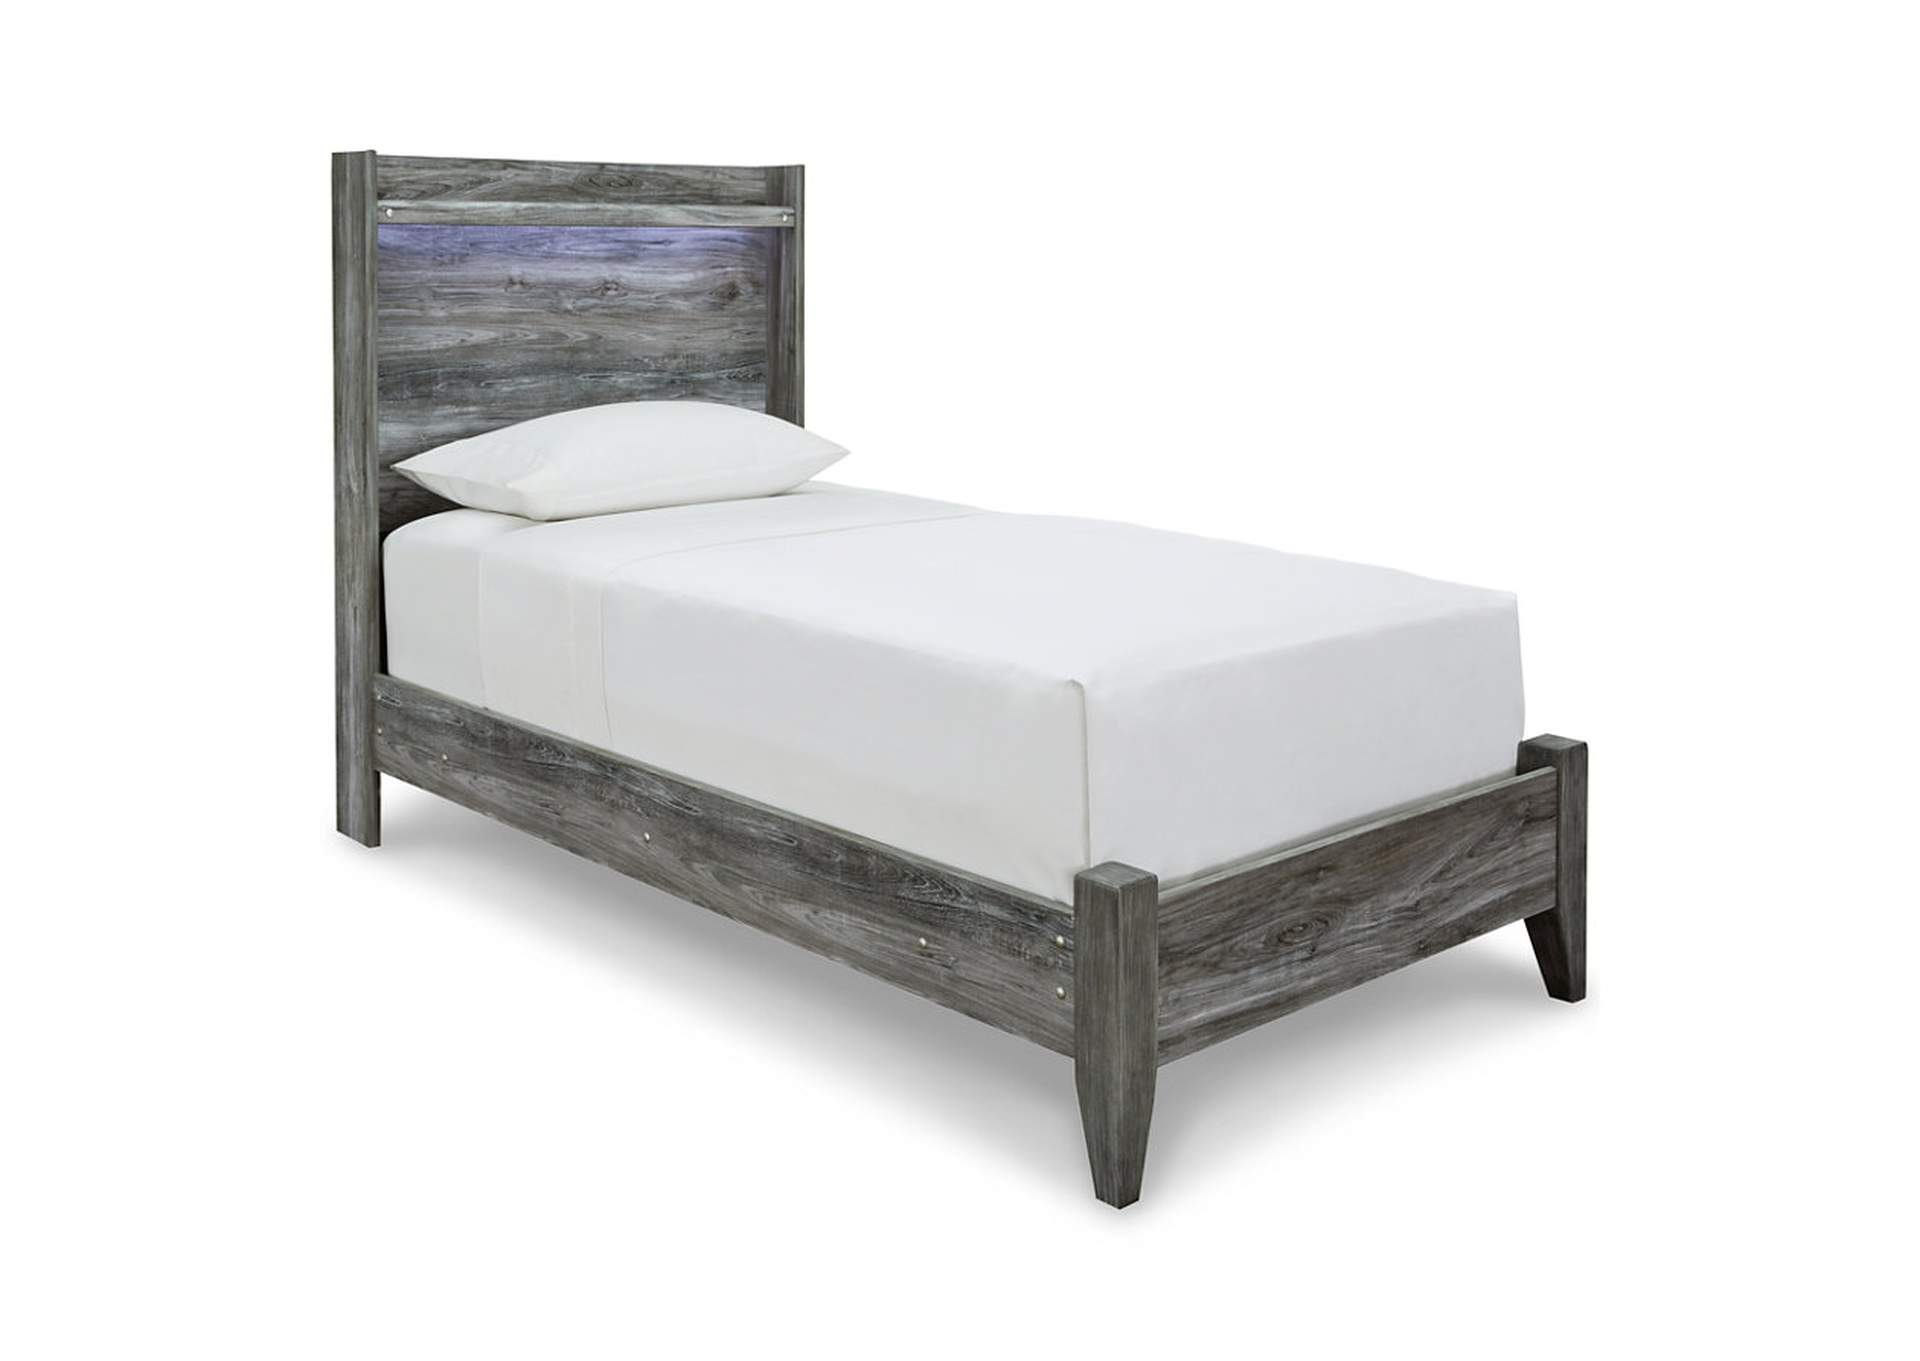 Baystorm Gray Twin Panel Bed,Signature Design By Ashley